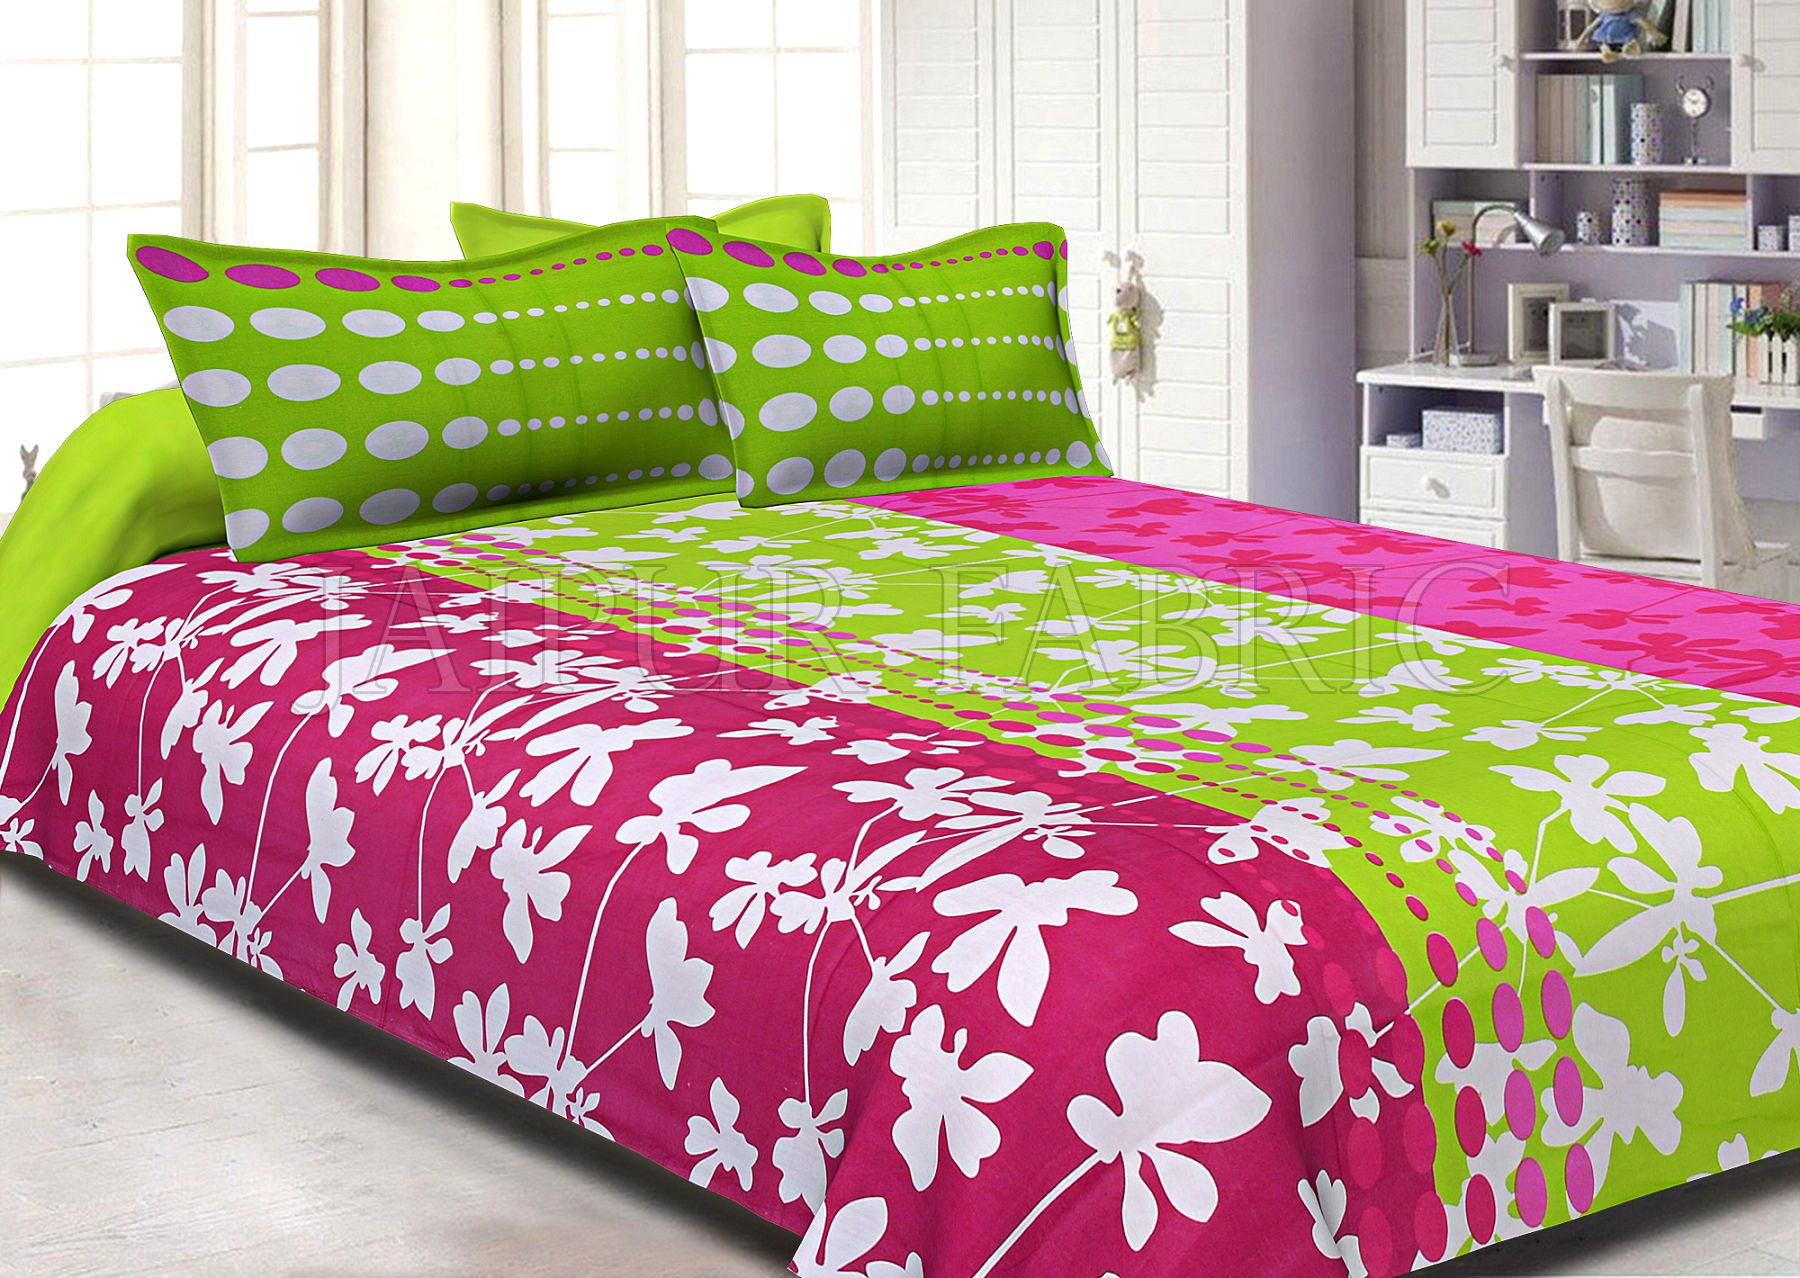 Pink and Green Printed Cotton Double Bed Sheet